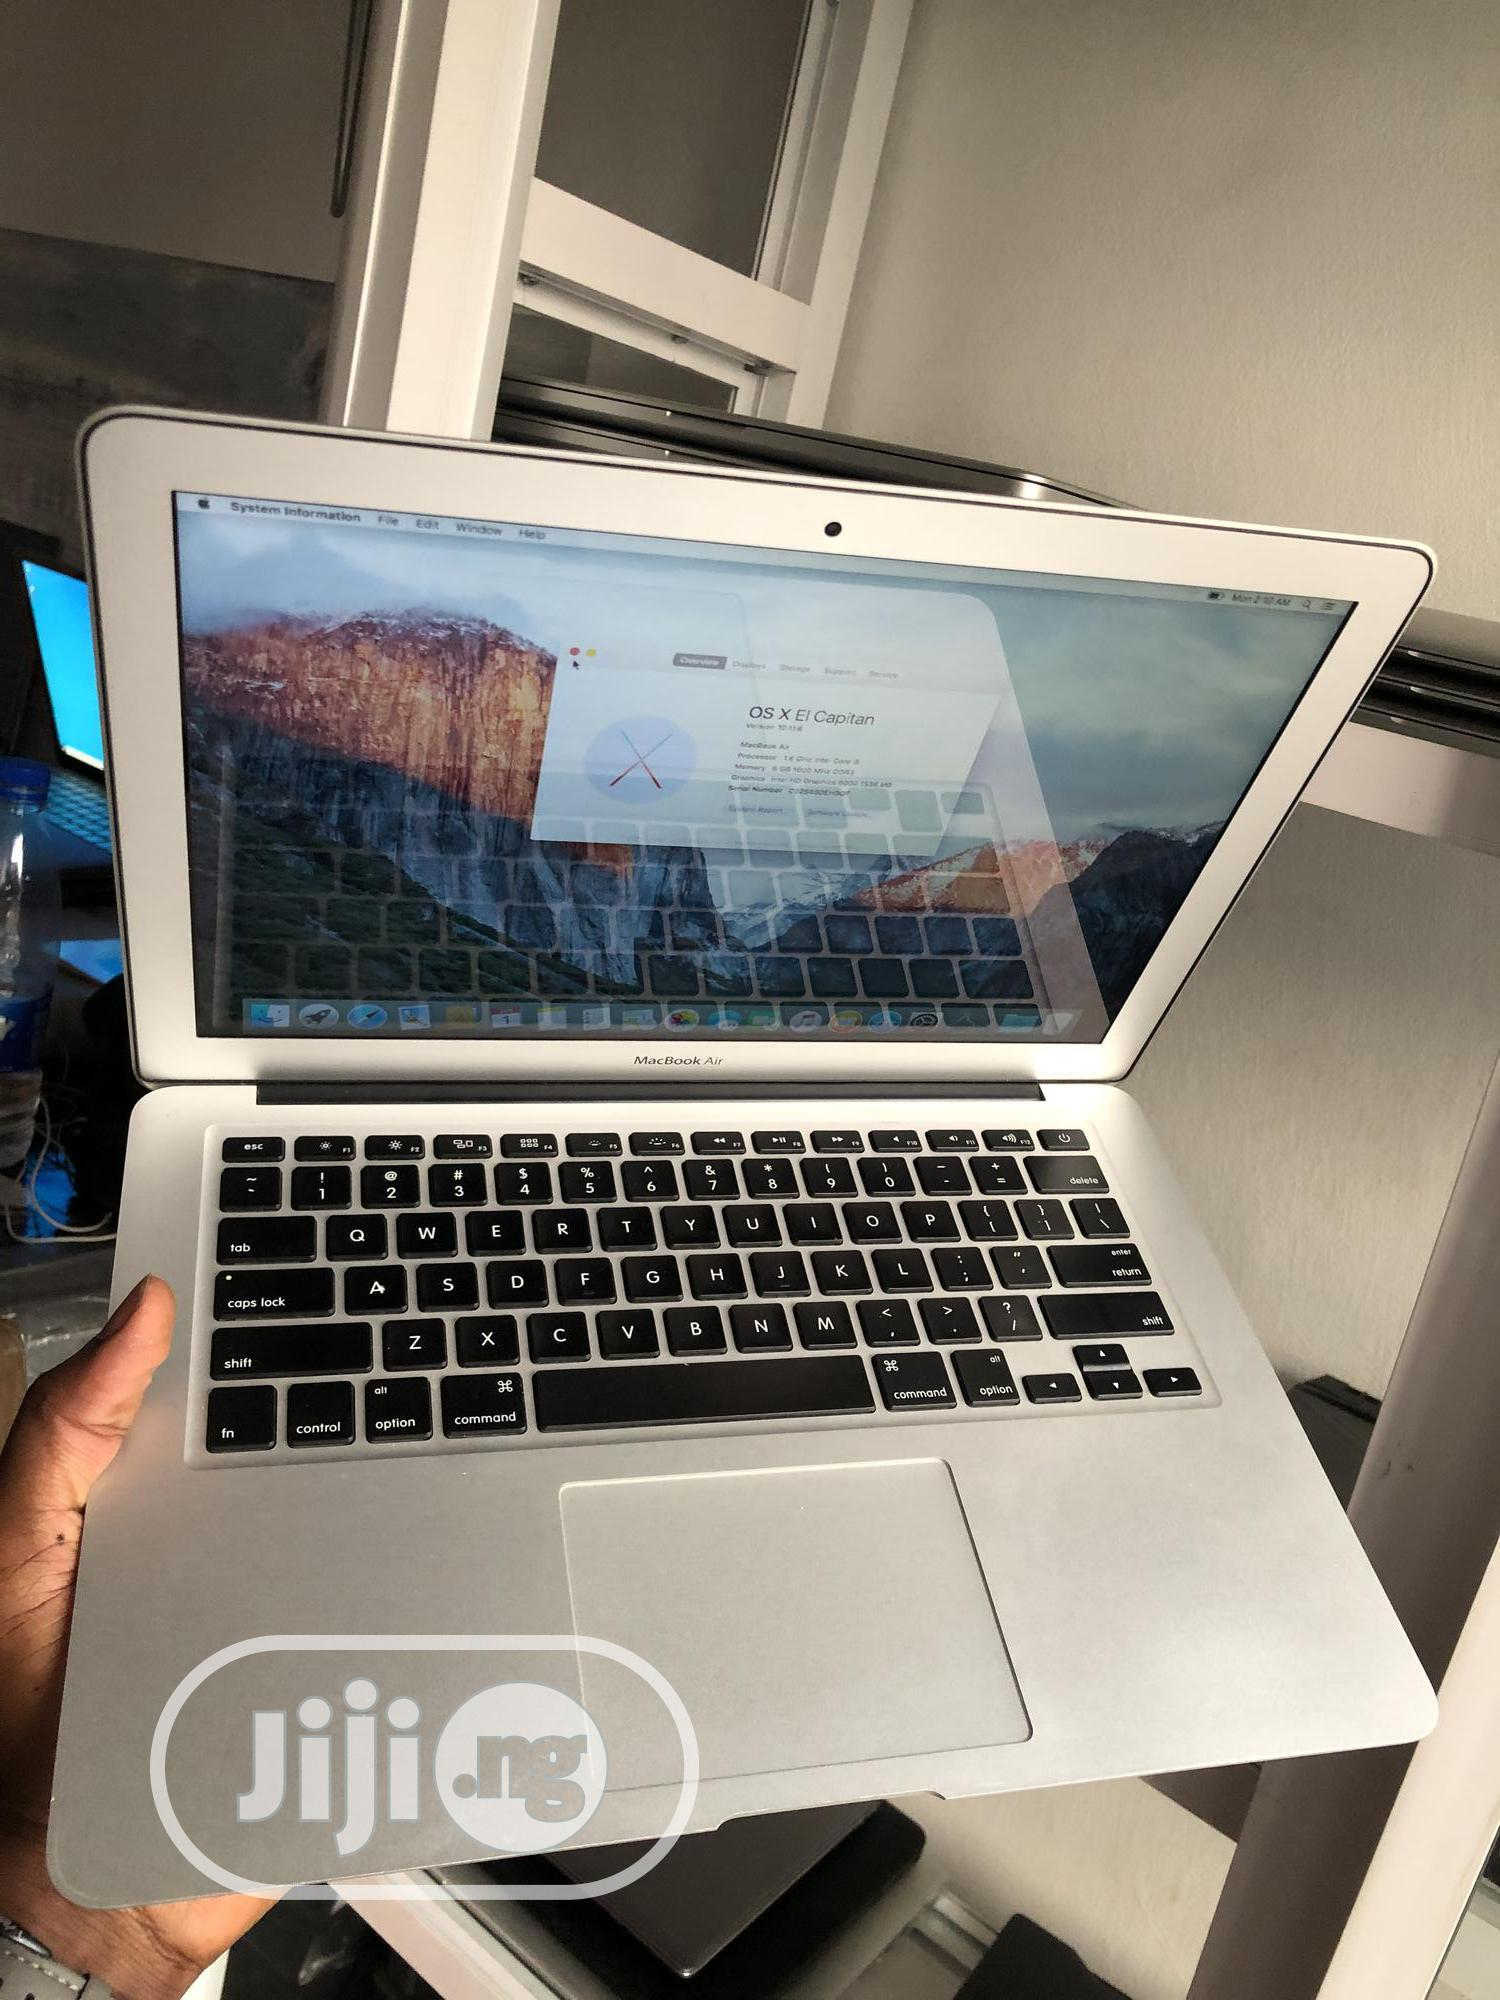 Laptop Apple MacBook Air 8GB Intel Core i5 SSD 256GB | Laptops & Computers for sale in Ikeja, Lagos State, Nigeria